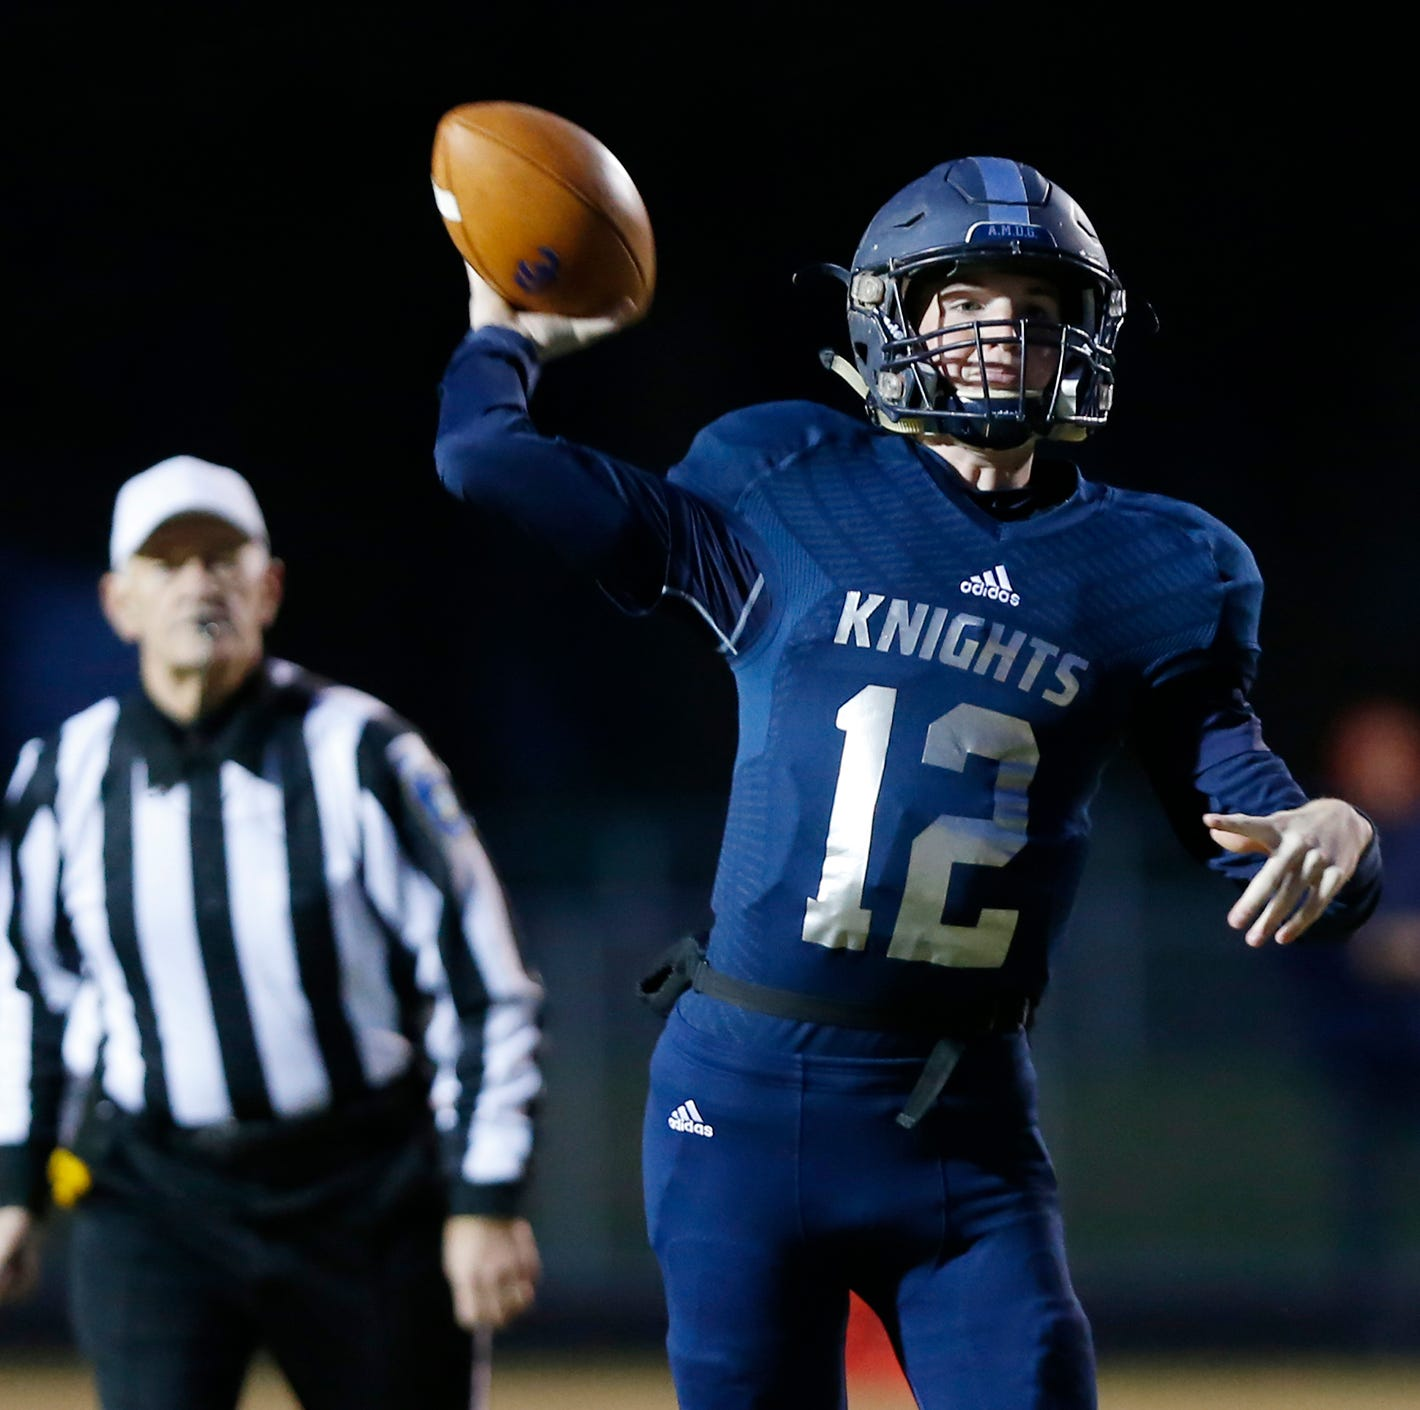 Central Catholic football's passing game too much for North White